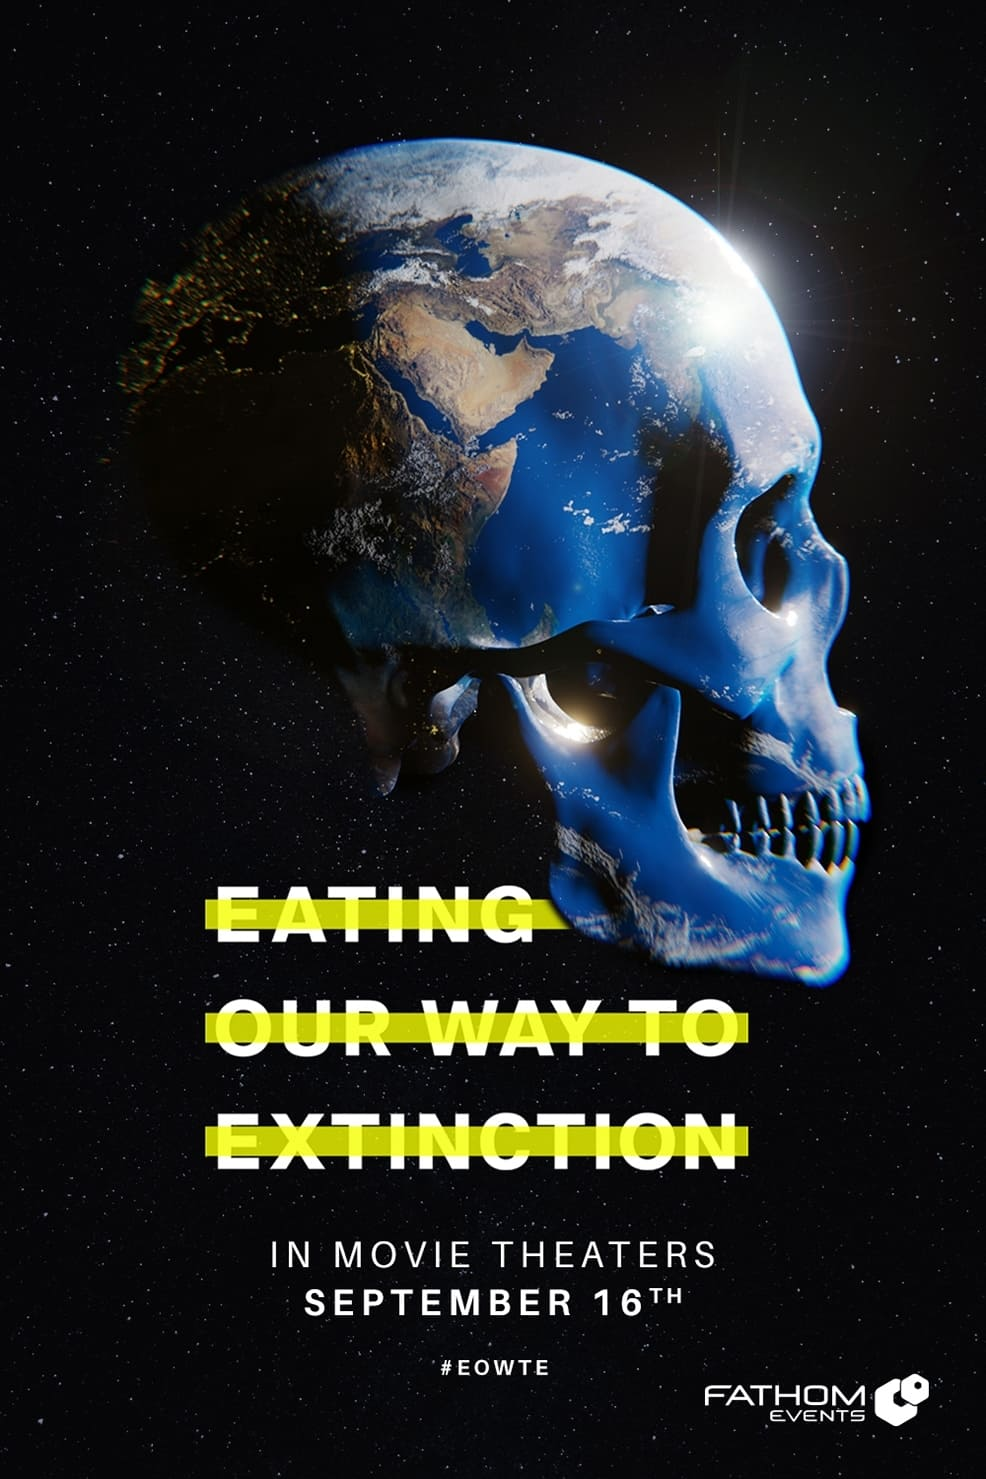 Eating Our Way to Extinction poster